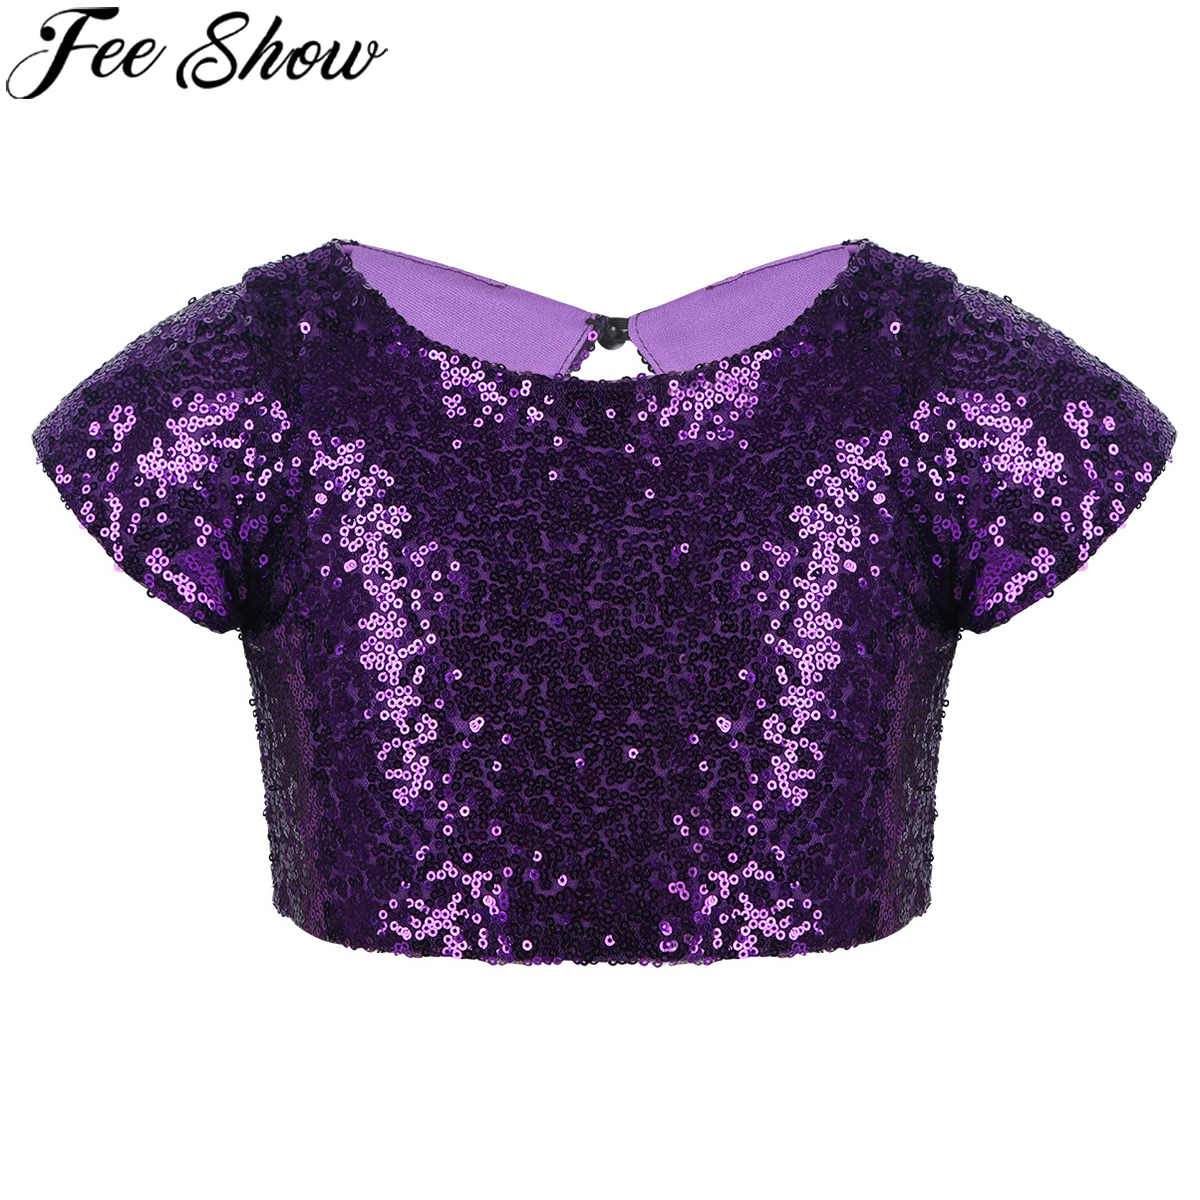 Shiny Metallic Childrens Cropped Vest Top Girls Gymnastic Dance Show Fancy Dress